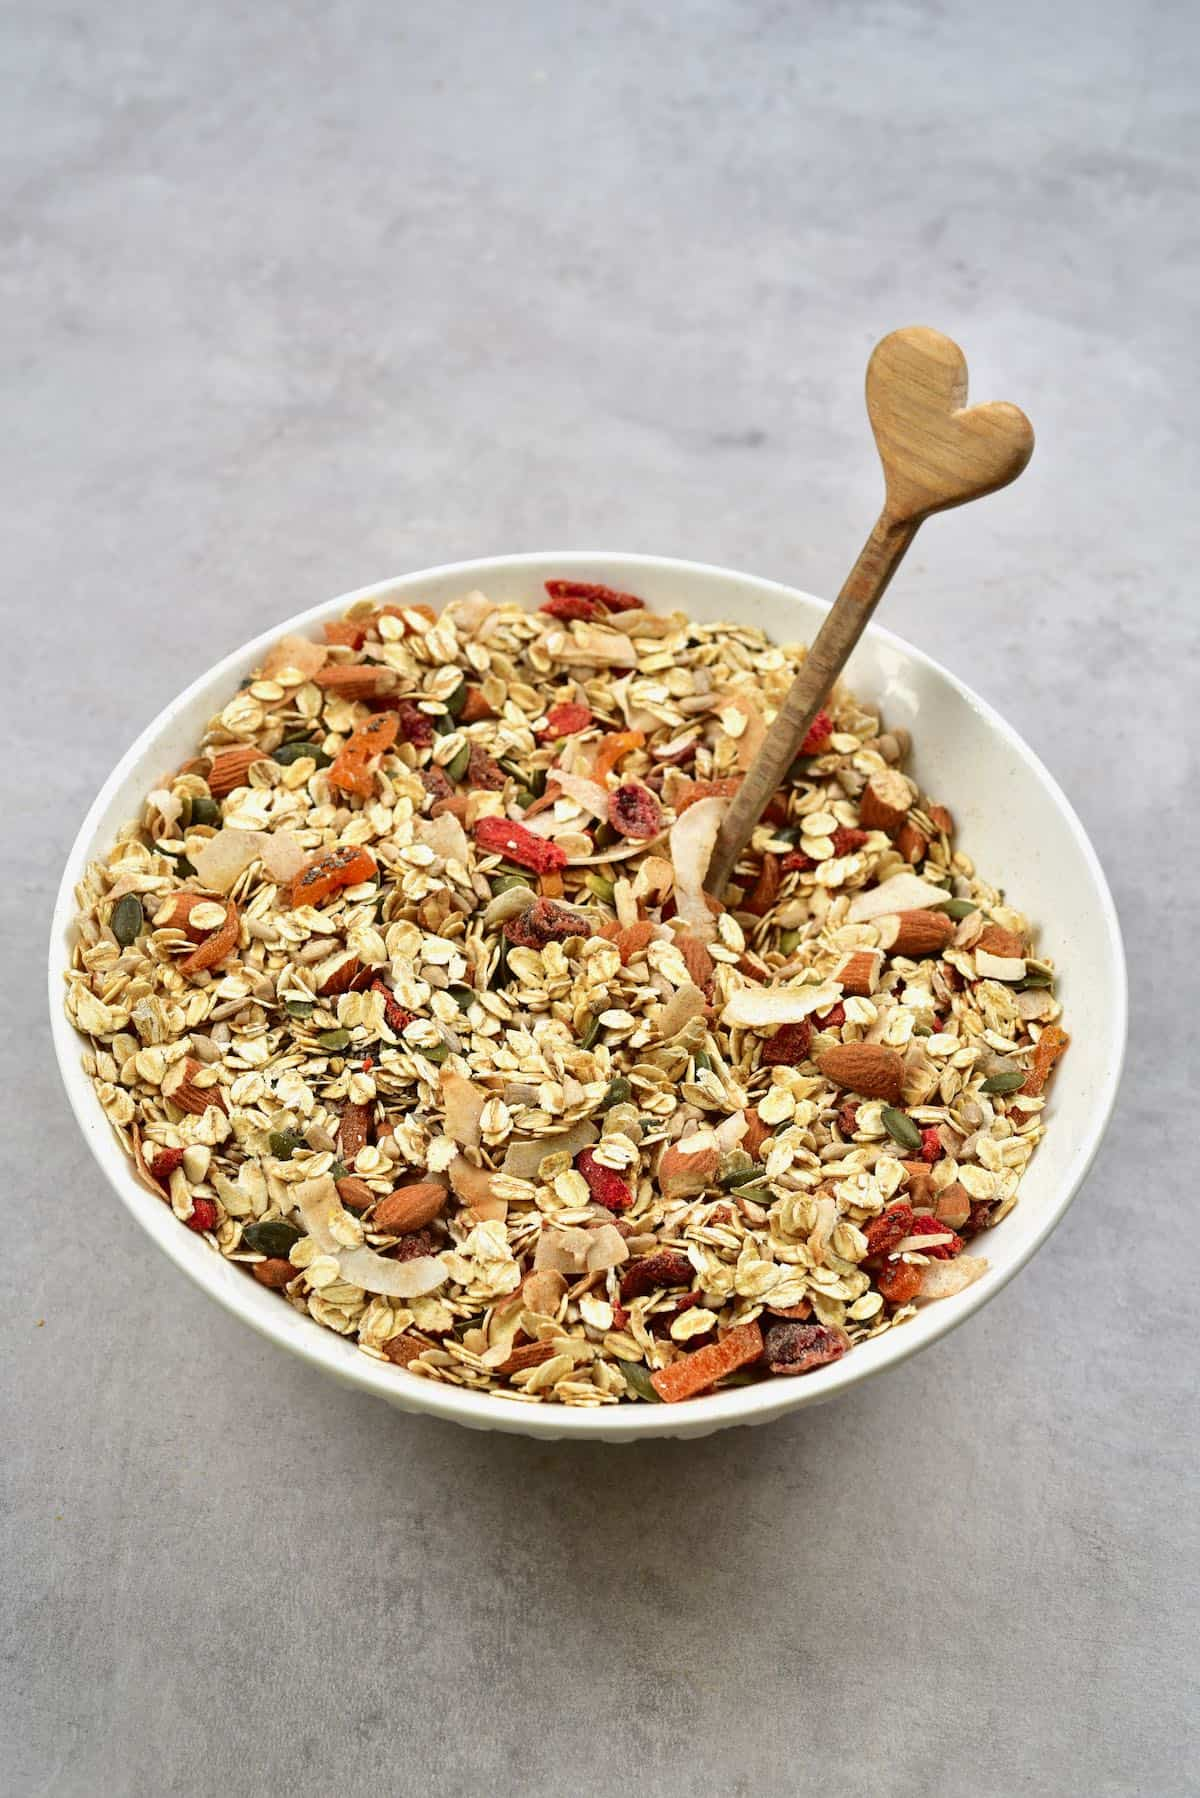 Homemade muesli in a bowl and a wooden spoon